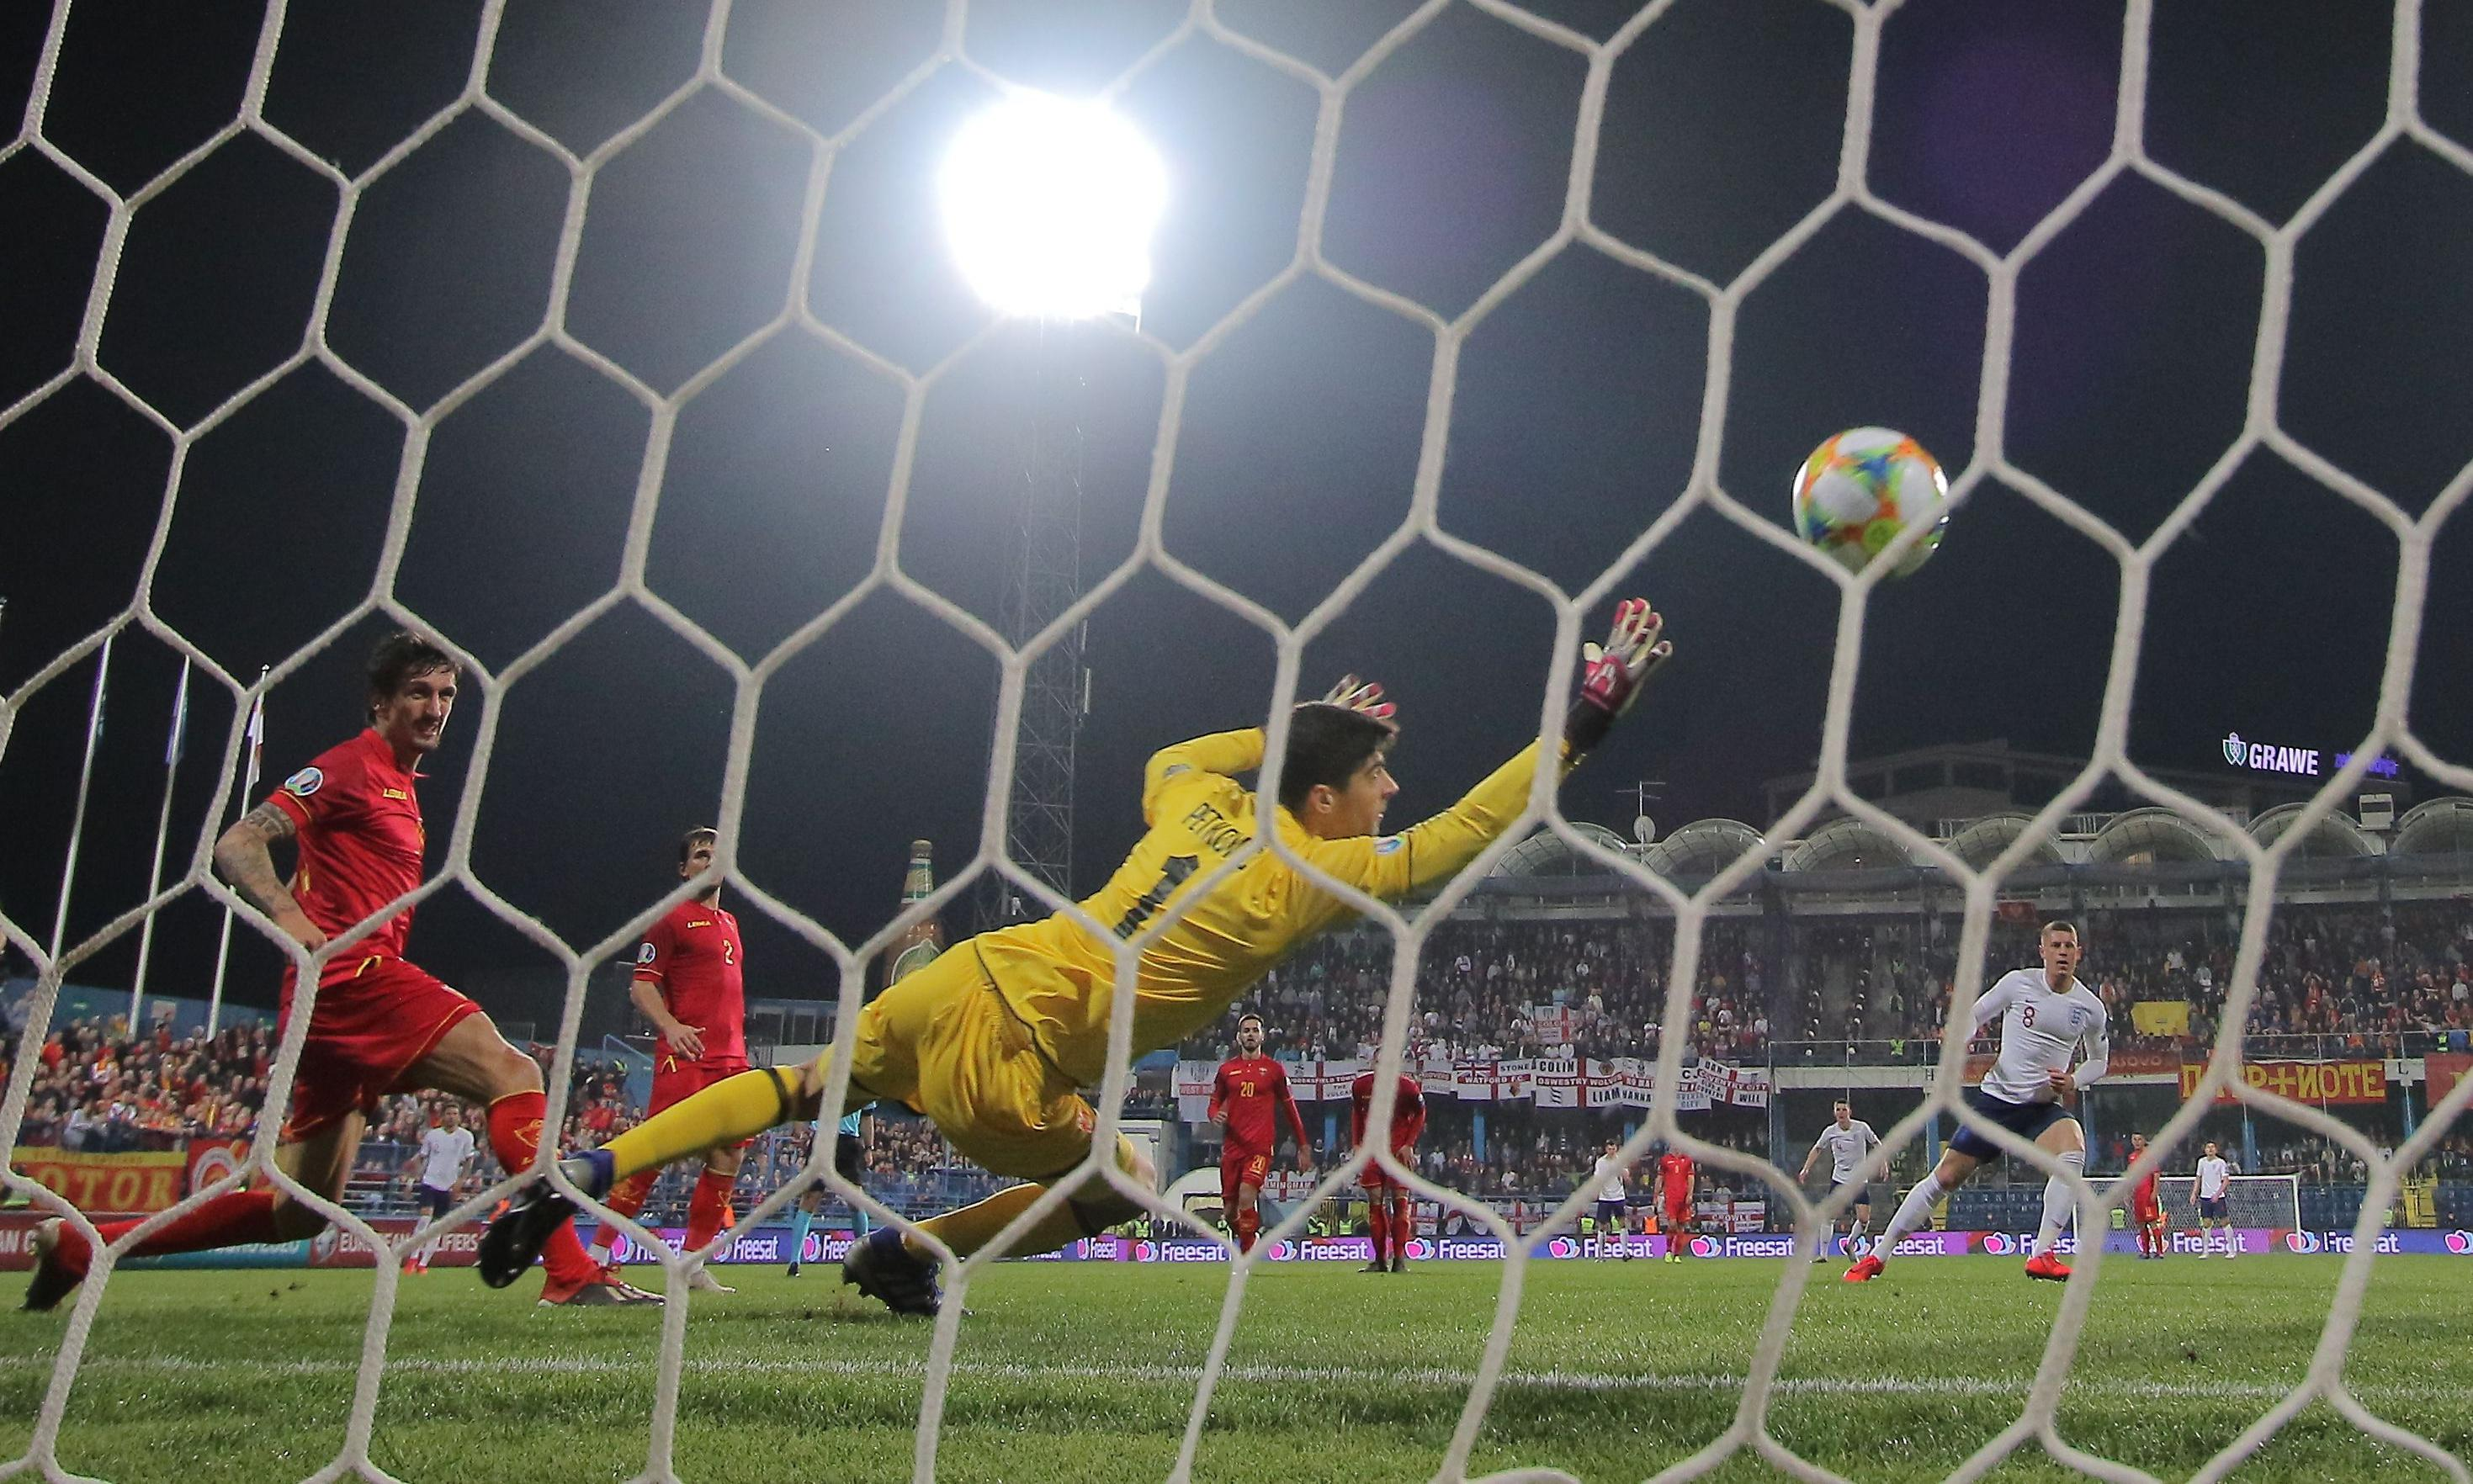 England put five past Montenegro but win marred by racial abuse from stands